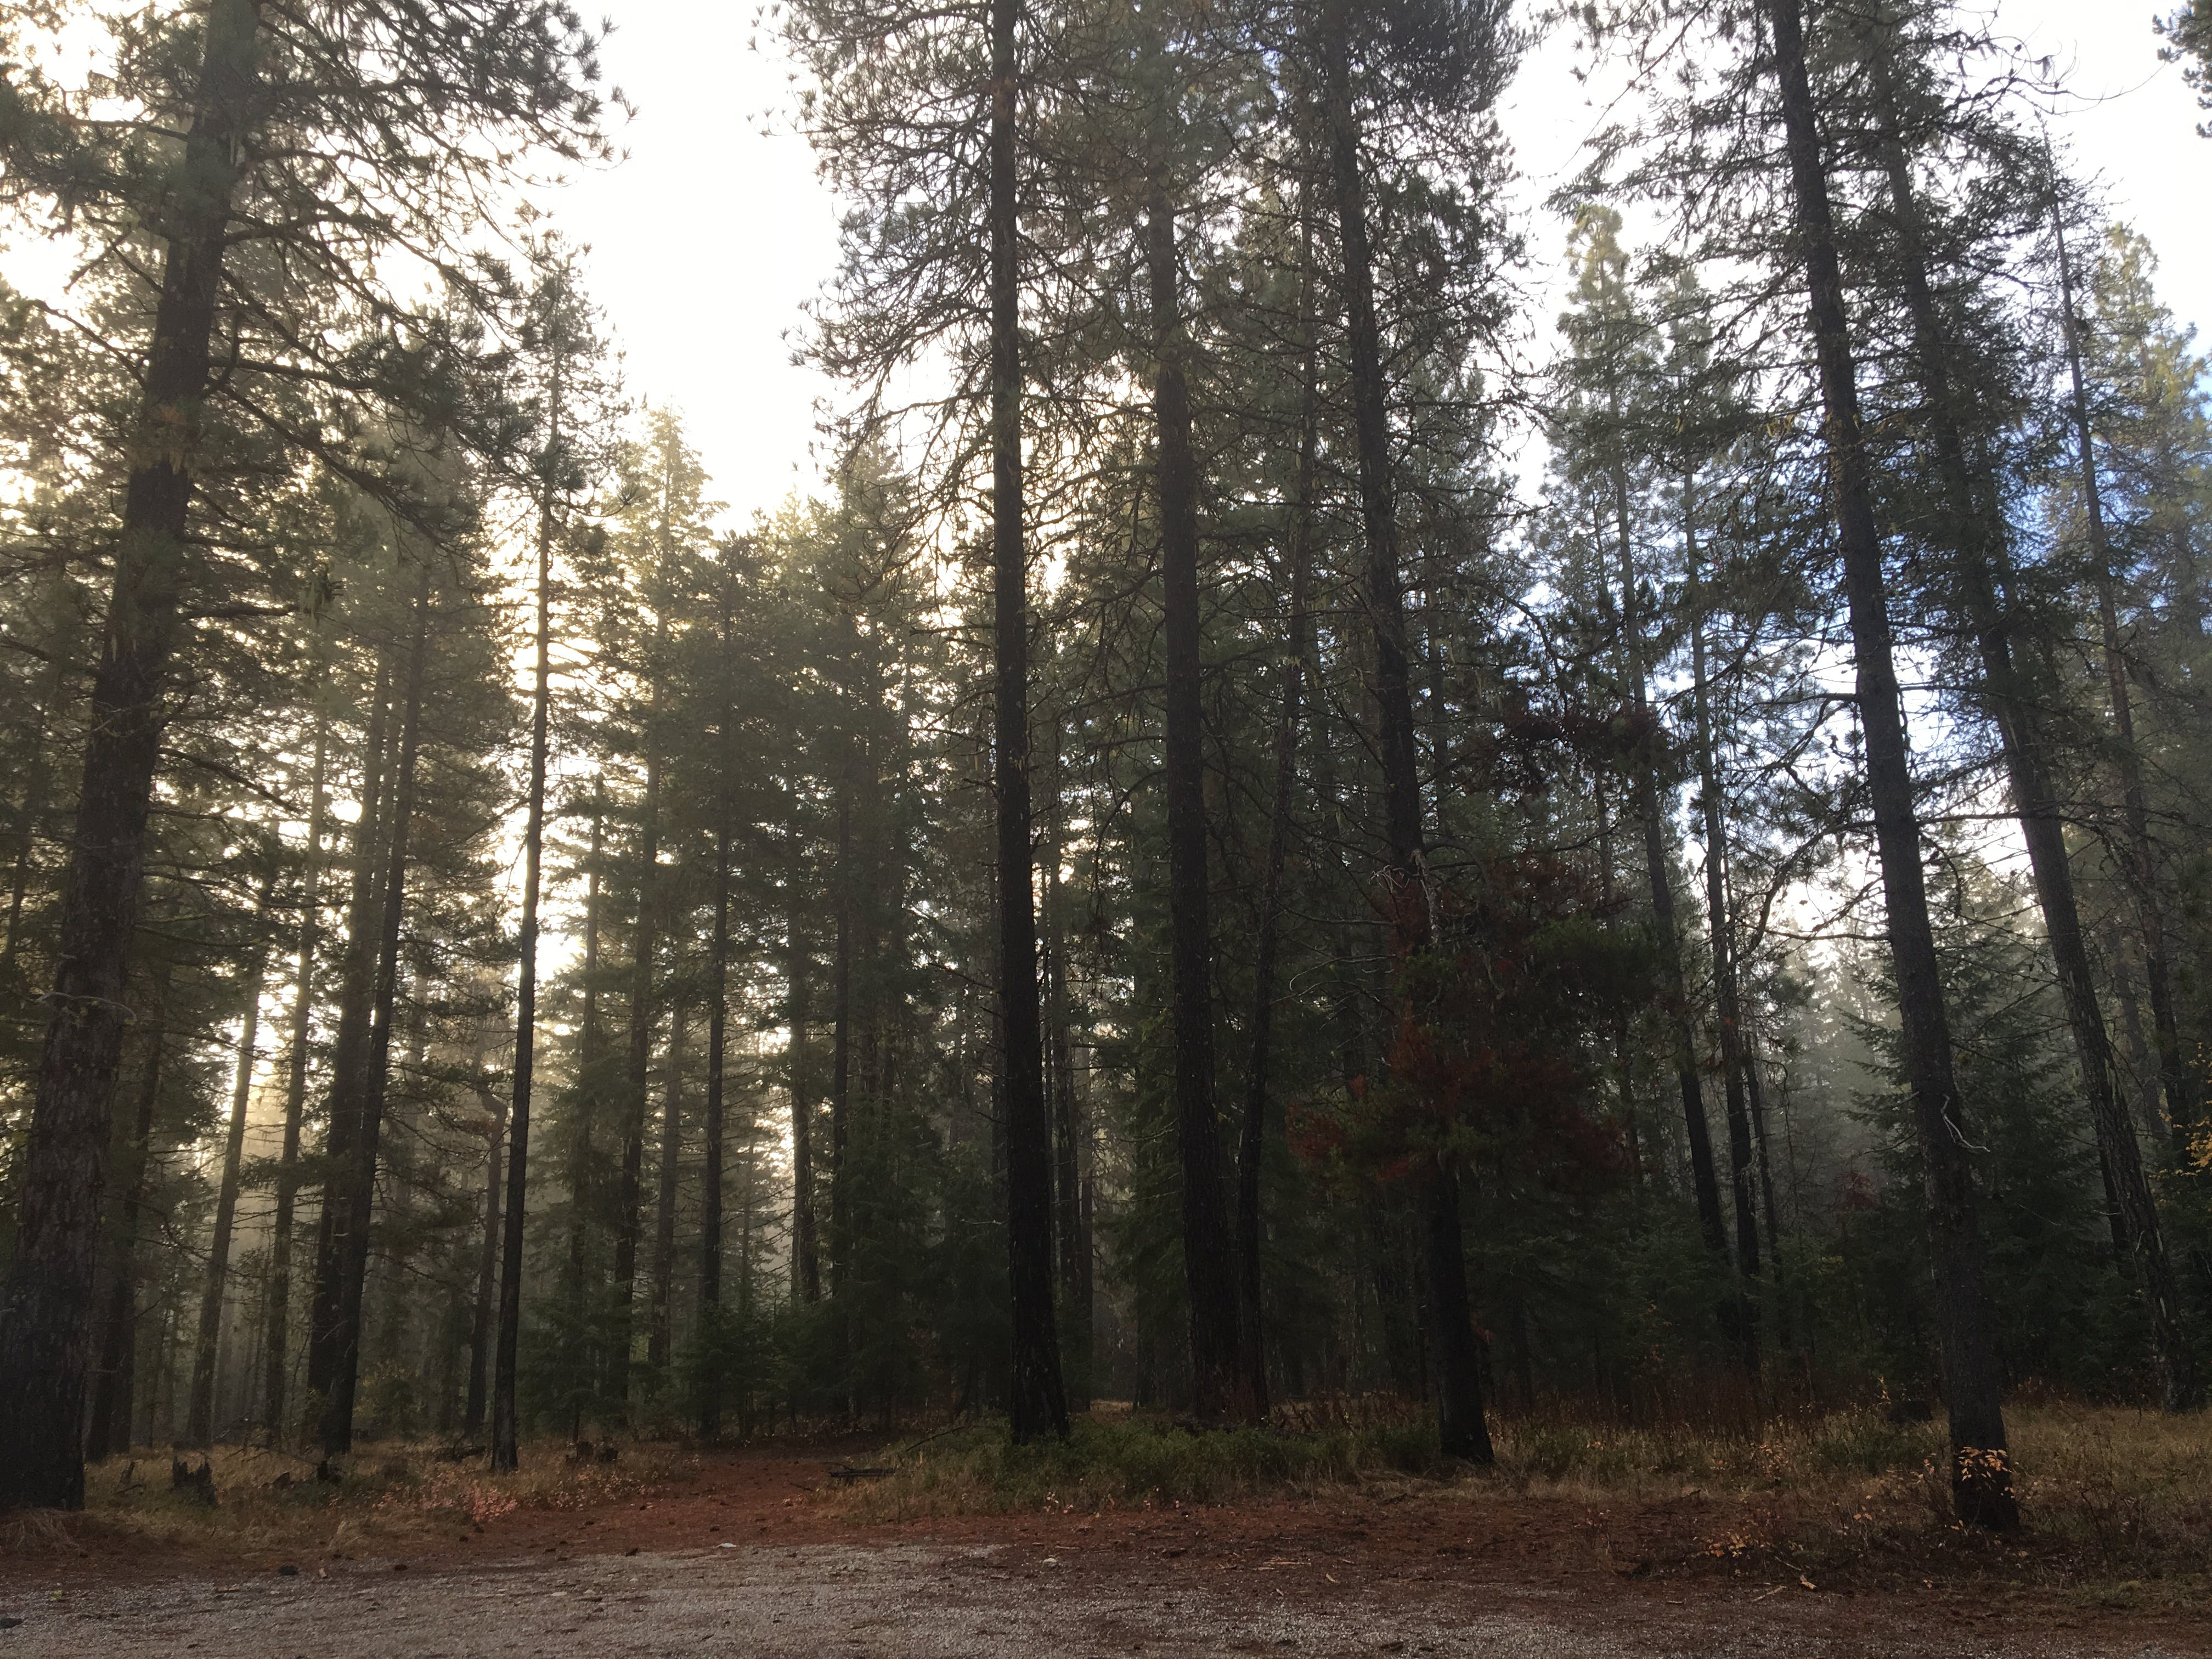 Free stock photo of forest, haze, hazy forest, pine trees